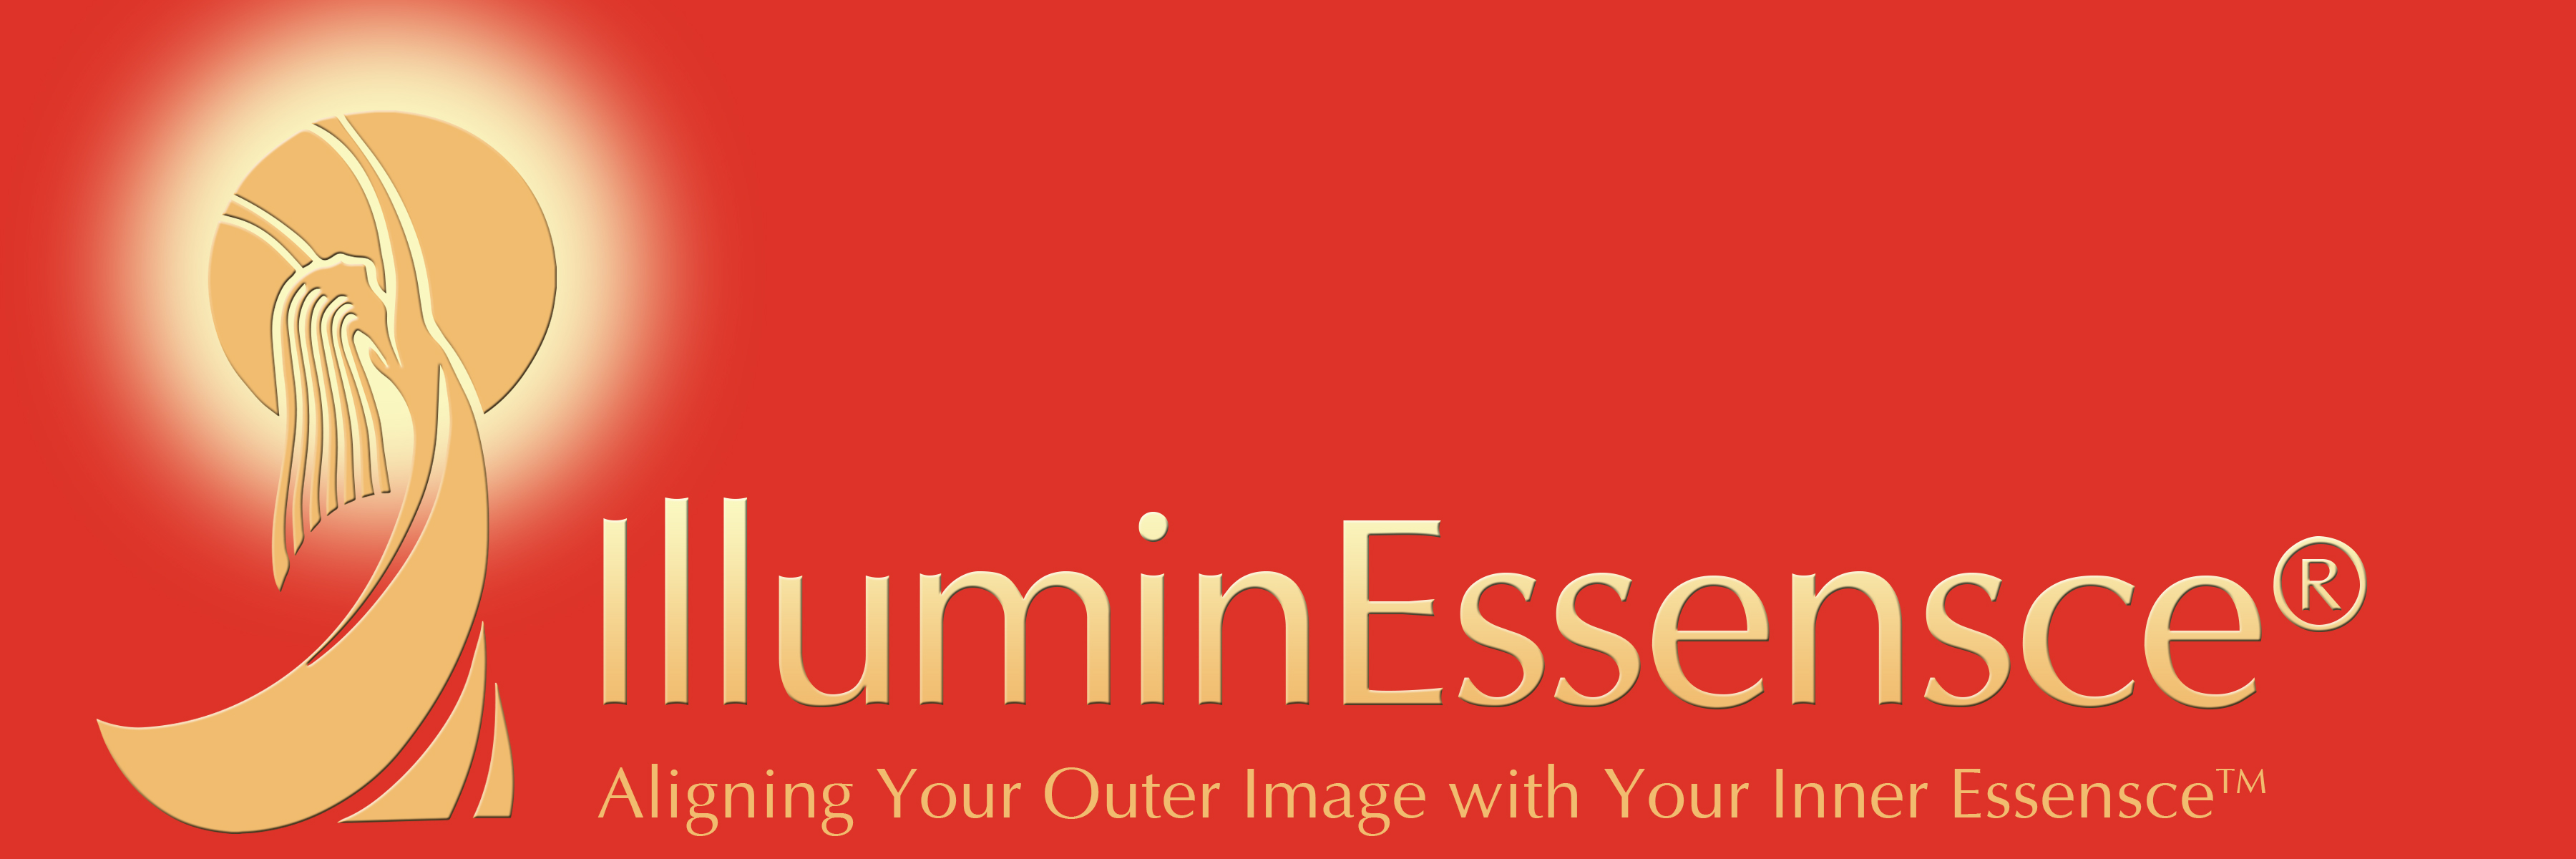 Aligning Your Outer Image with Your Inner Essensce